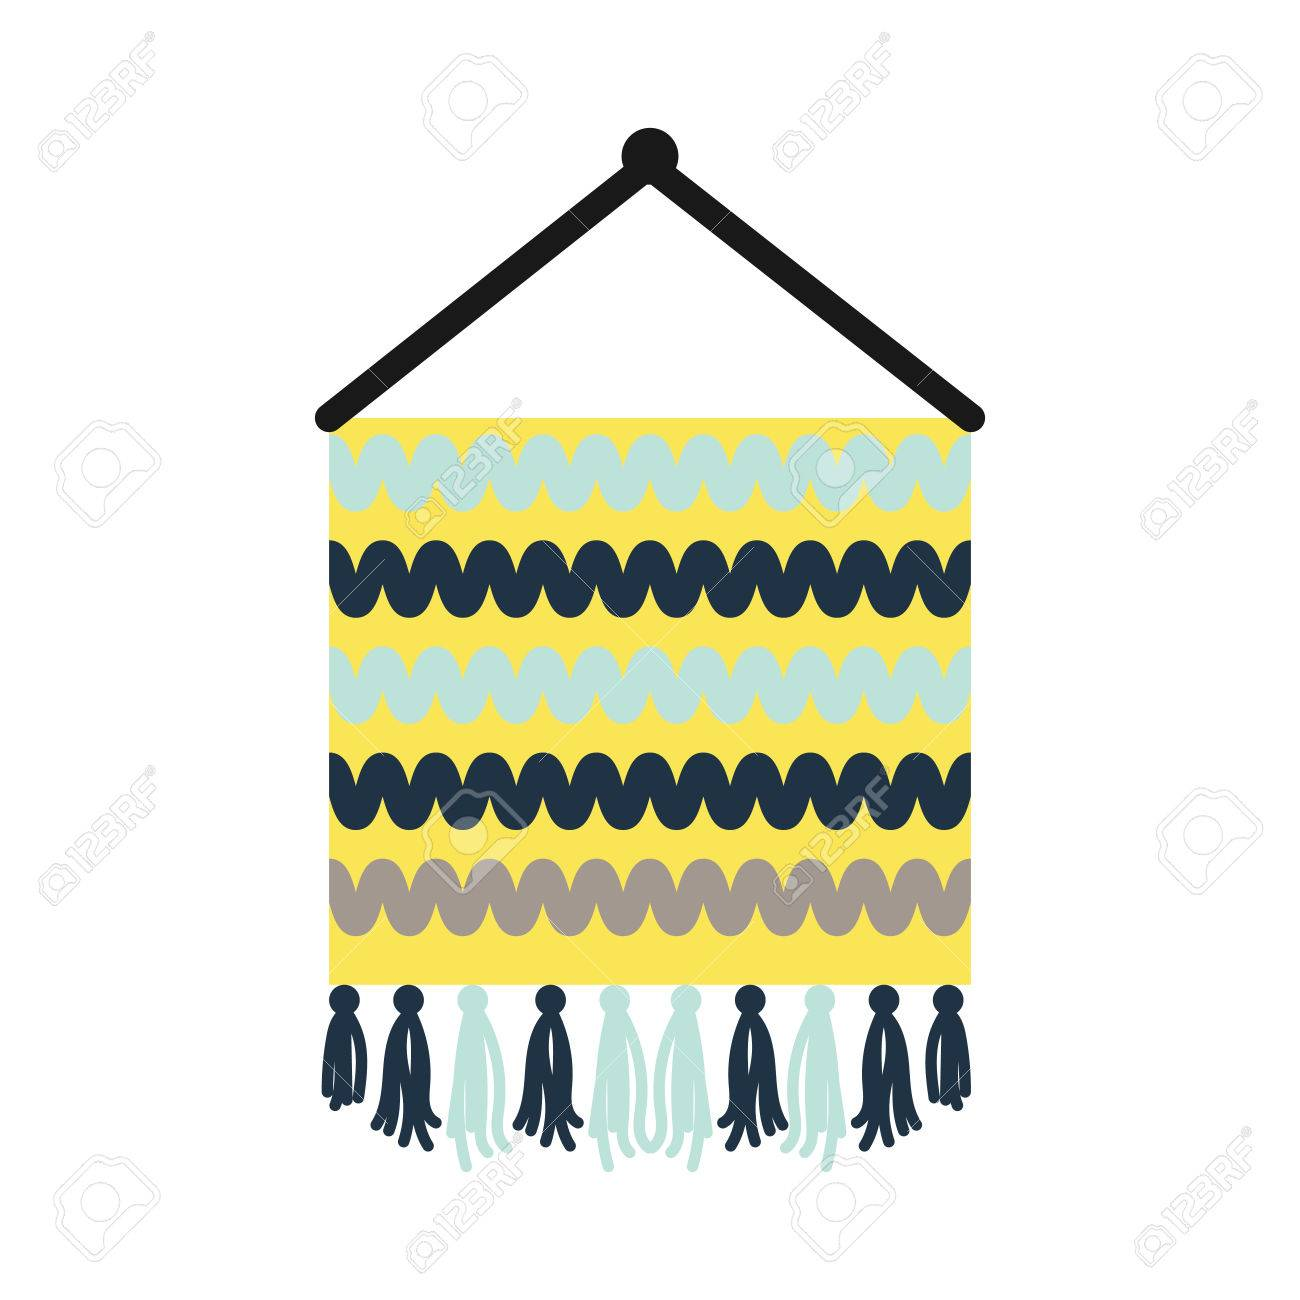 Wall Knitted Decor Element Vector Icon. Thread Yarn Hanging ...